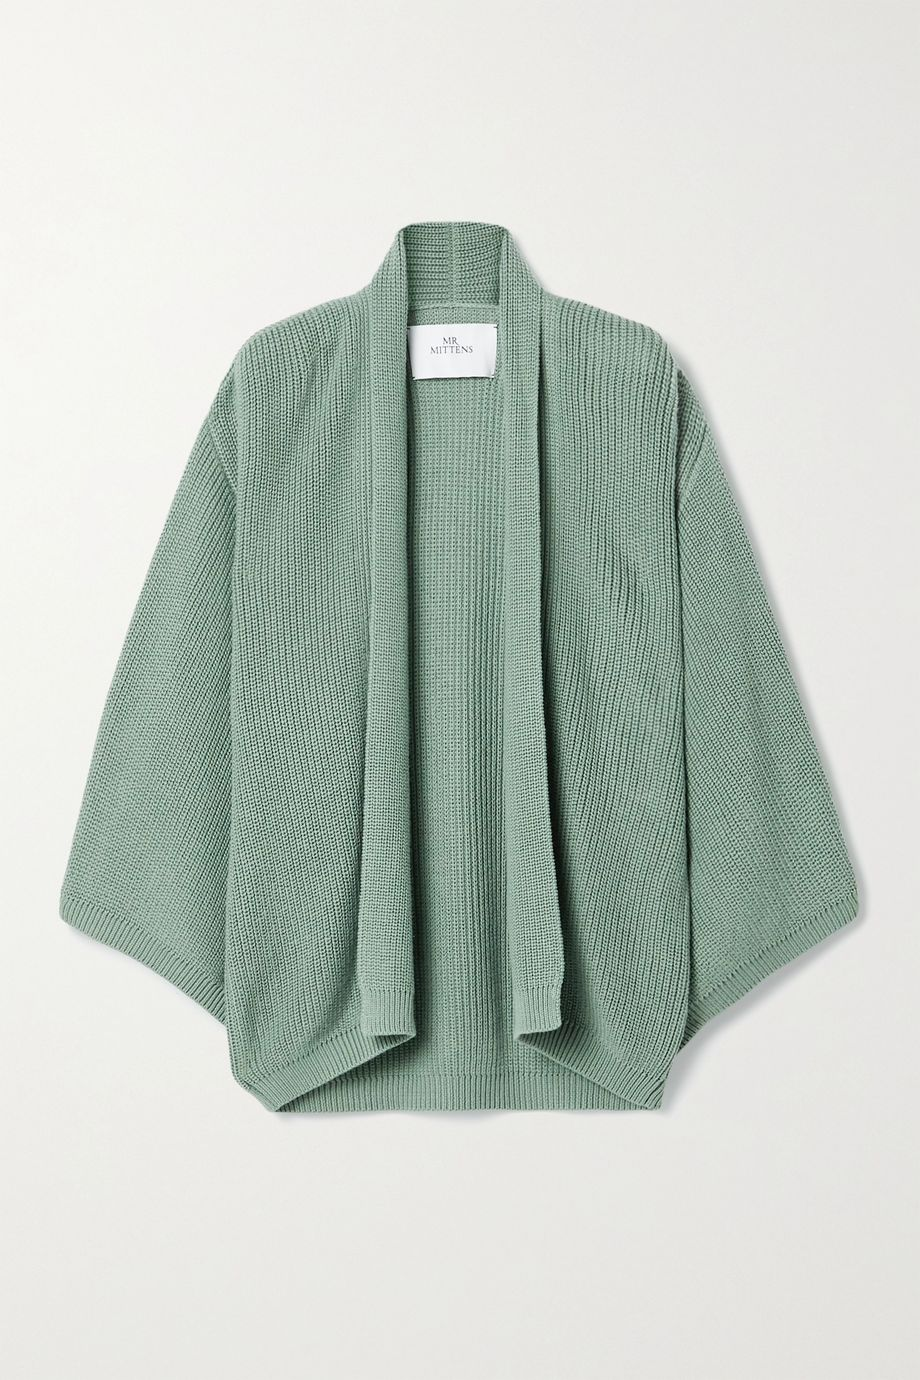 I Love Mr Mittens Oversized ribbed cotton cardigan